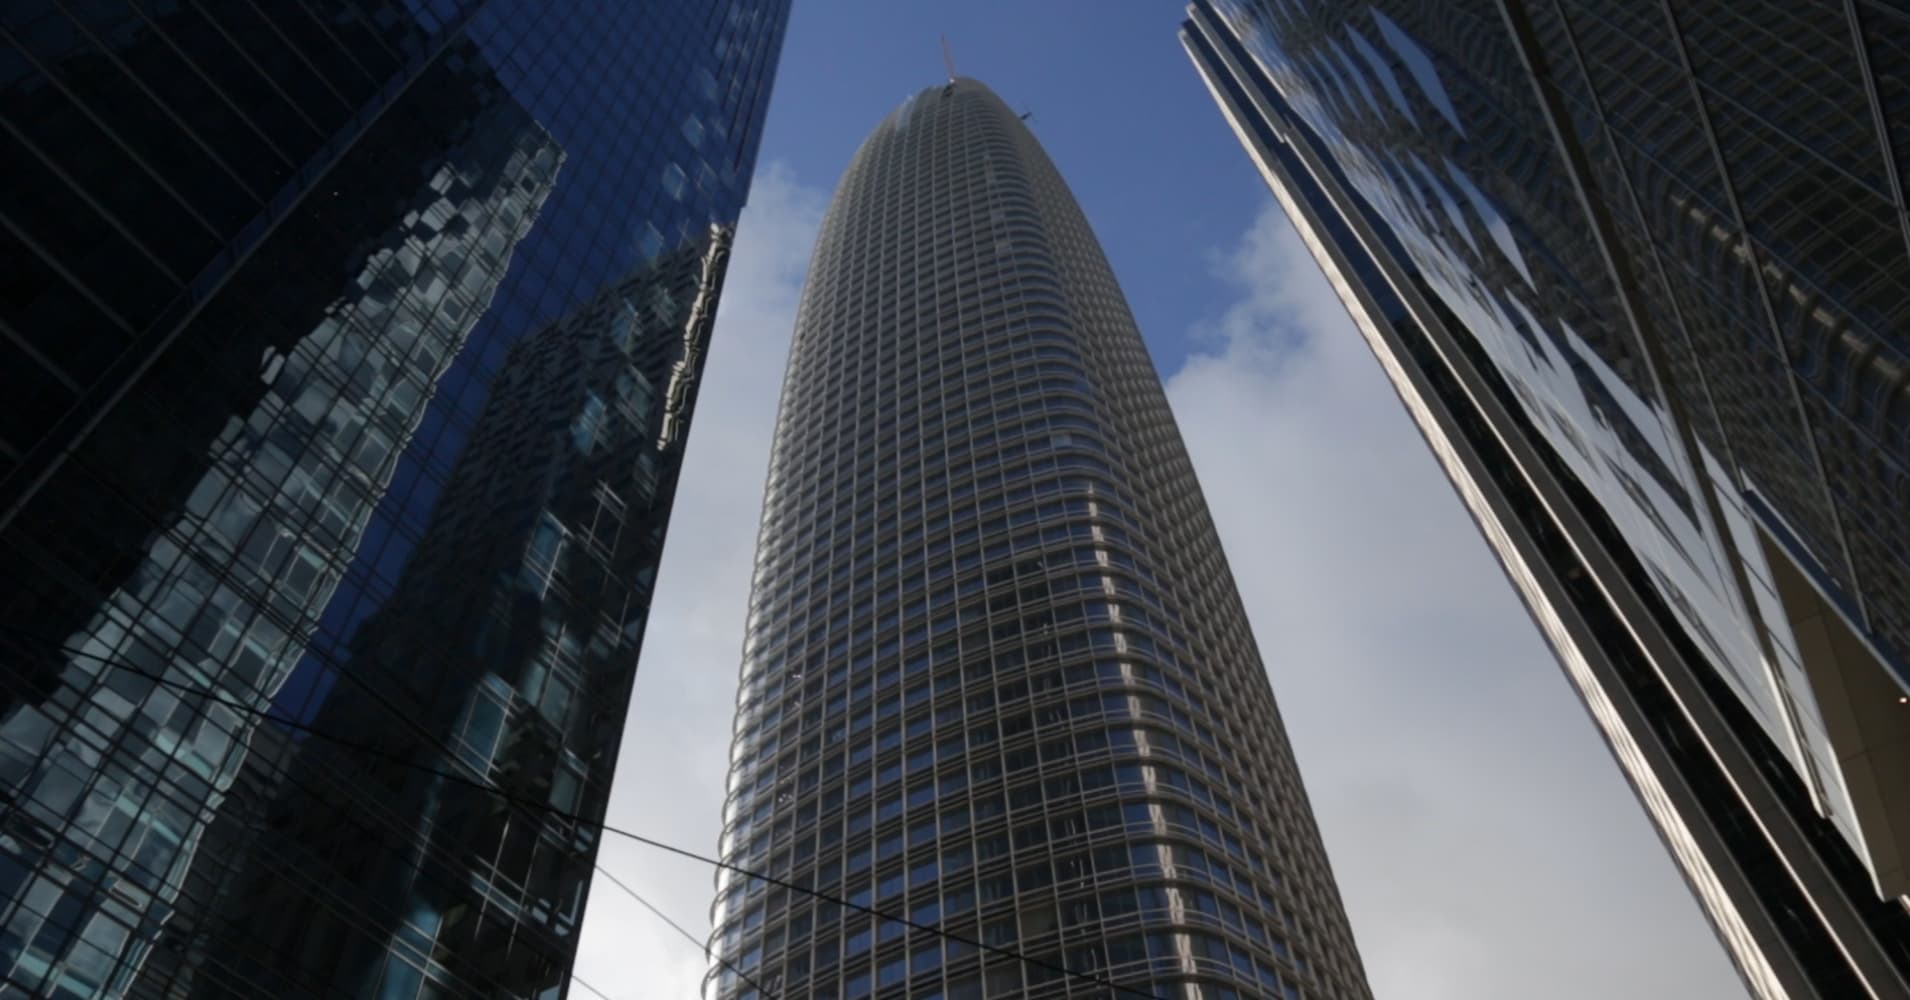 The tallest building in California is almost done — here's the view from the top floor